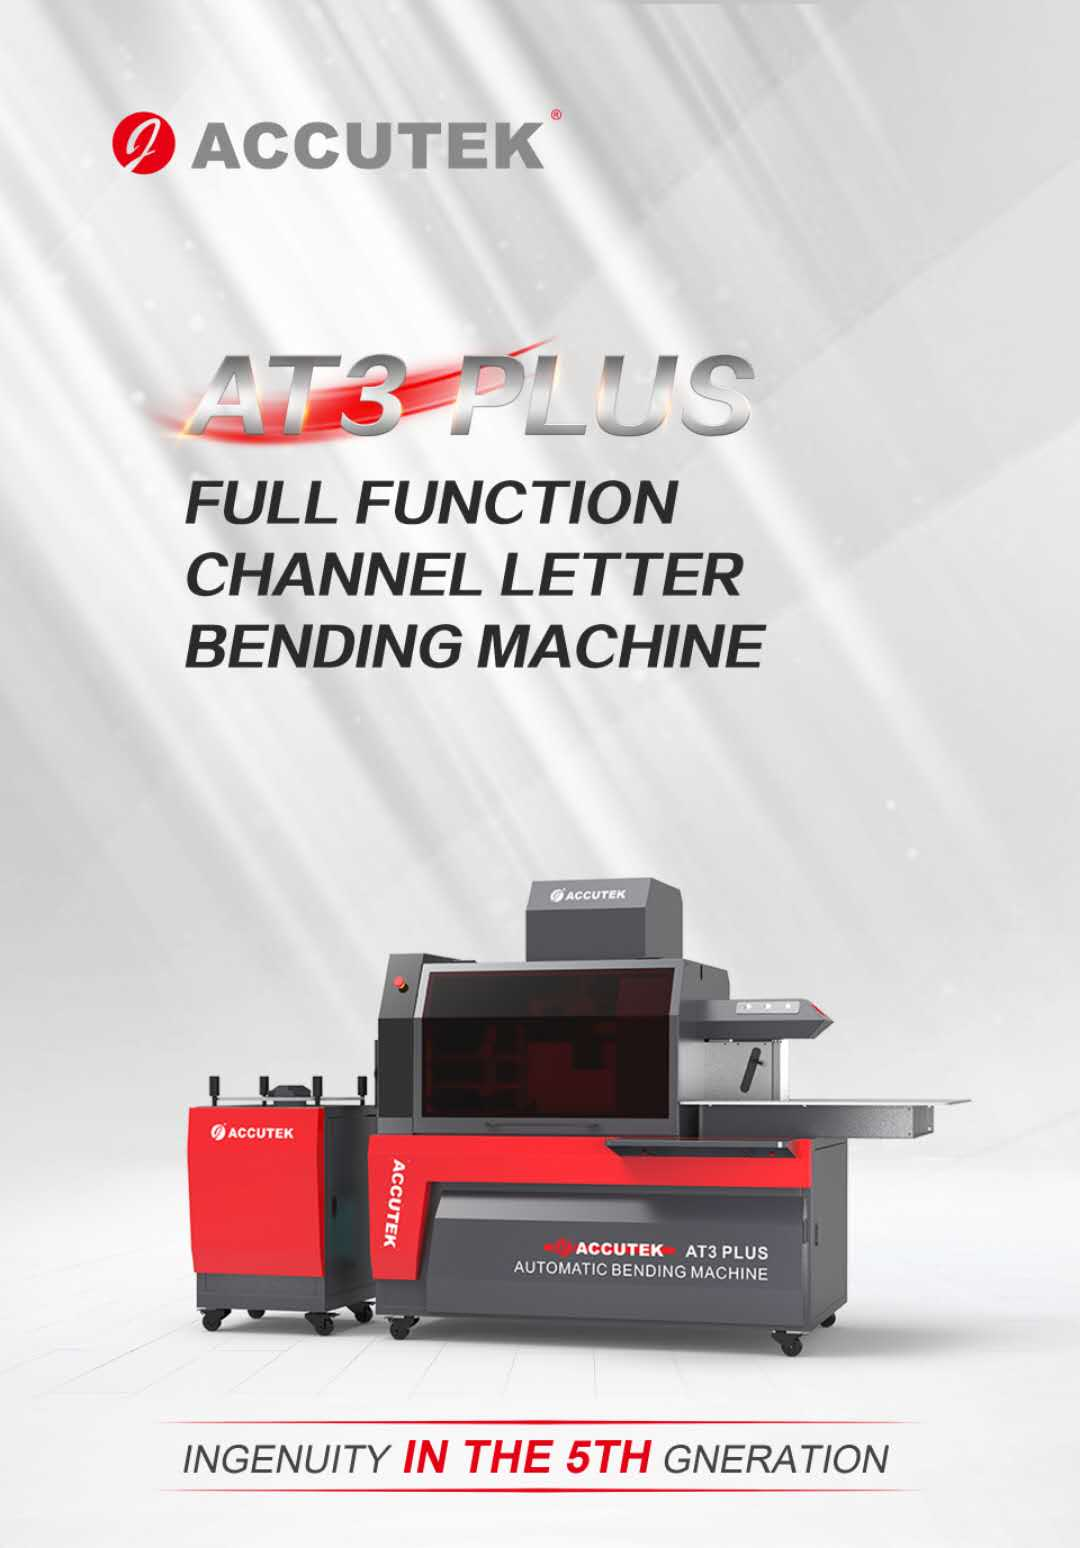 ACCUTEK AT3 PLUS FULL FUNCTION CHANNEL LETTER BENDING MACHINE